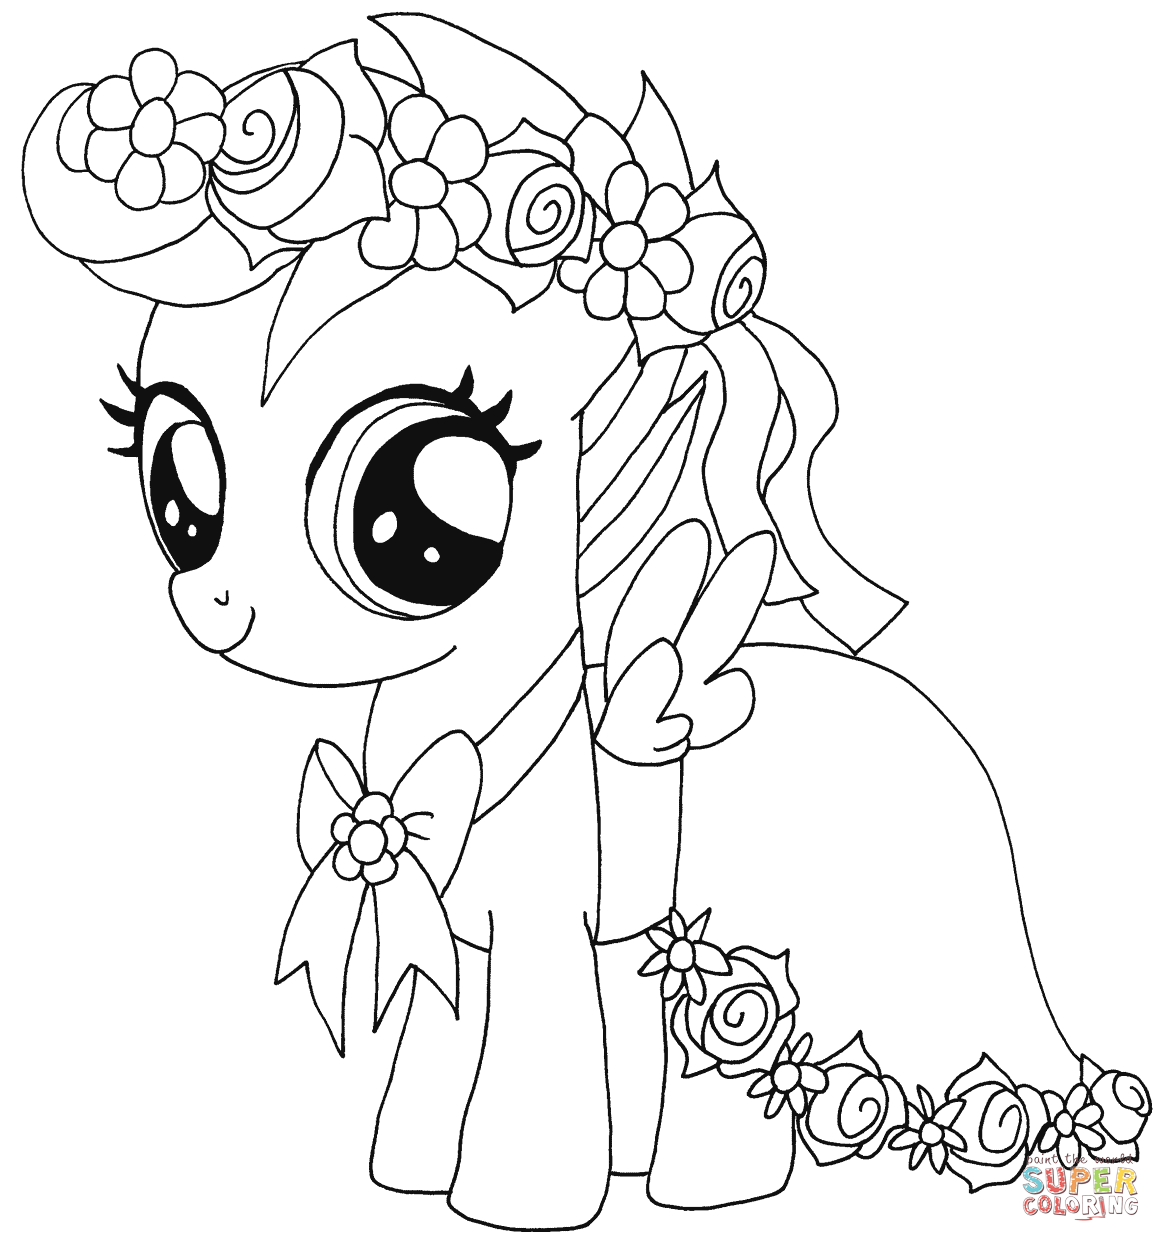 My Little Pony Scootaloo From My Little Pony Coloring Page My